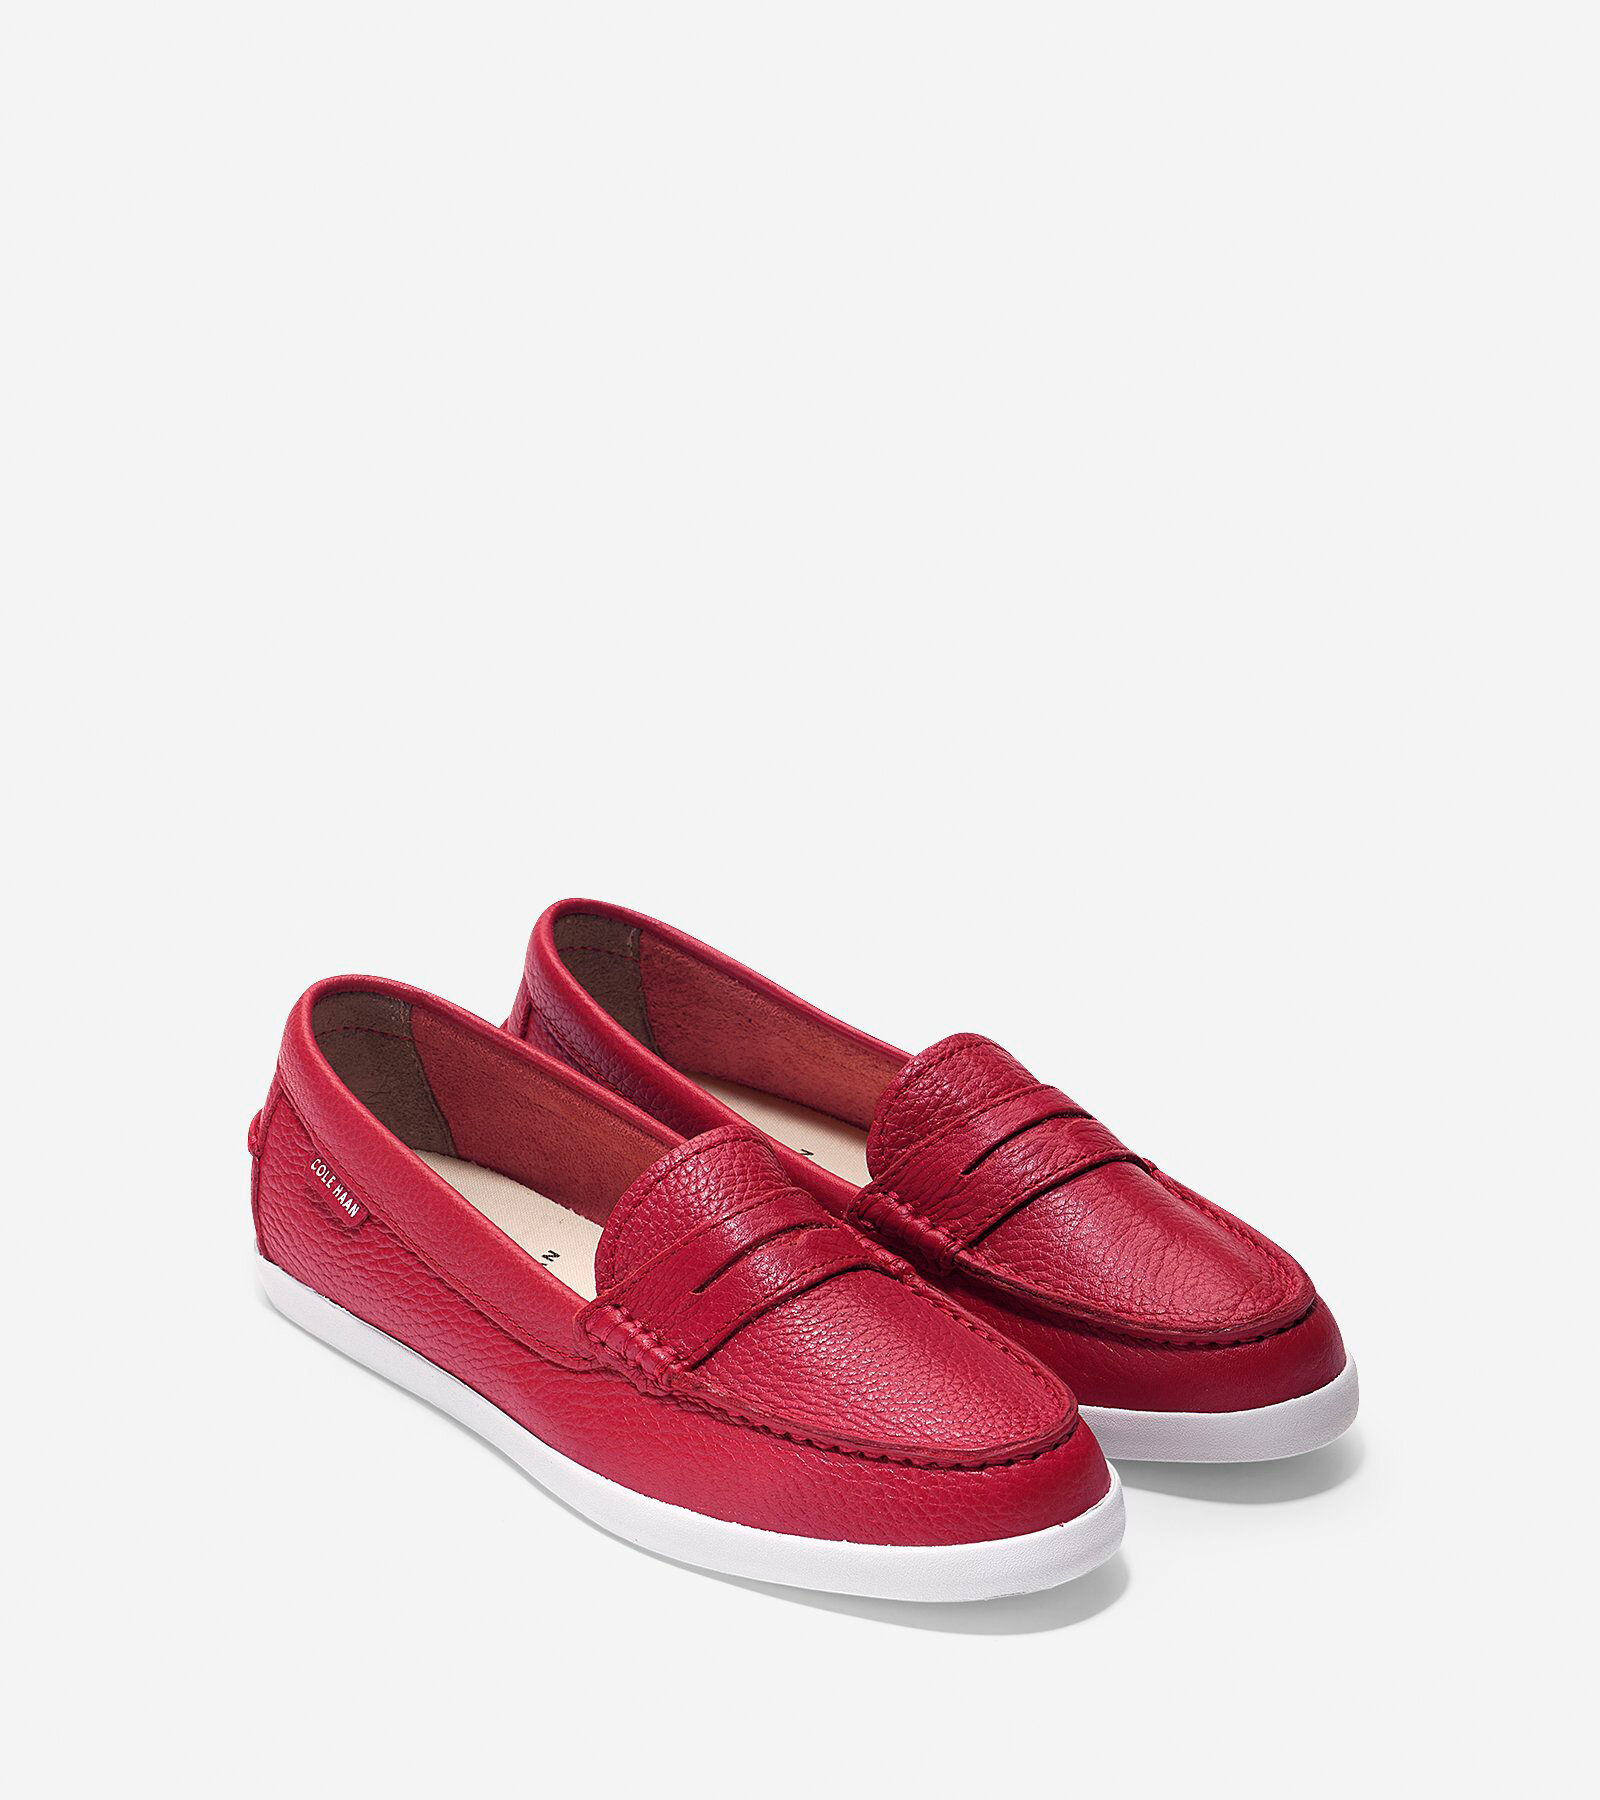 Womens Shoes Cole Haan Pinch Weekender Red Patent